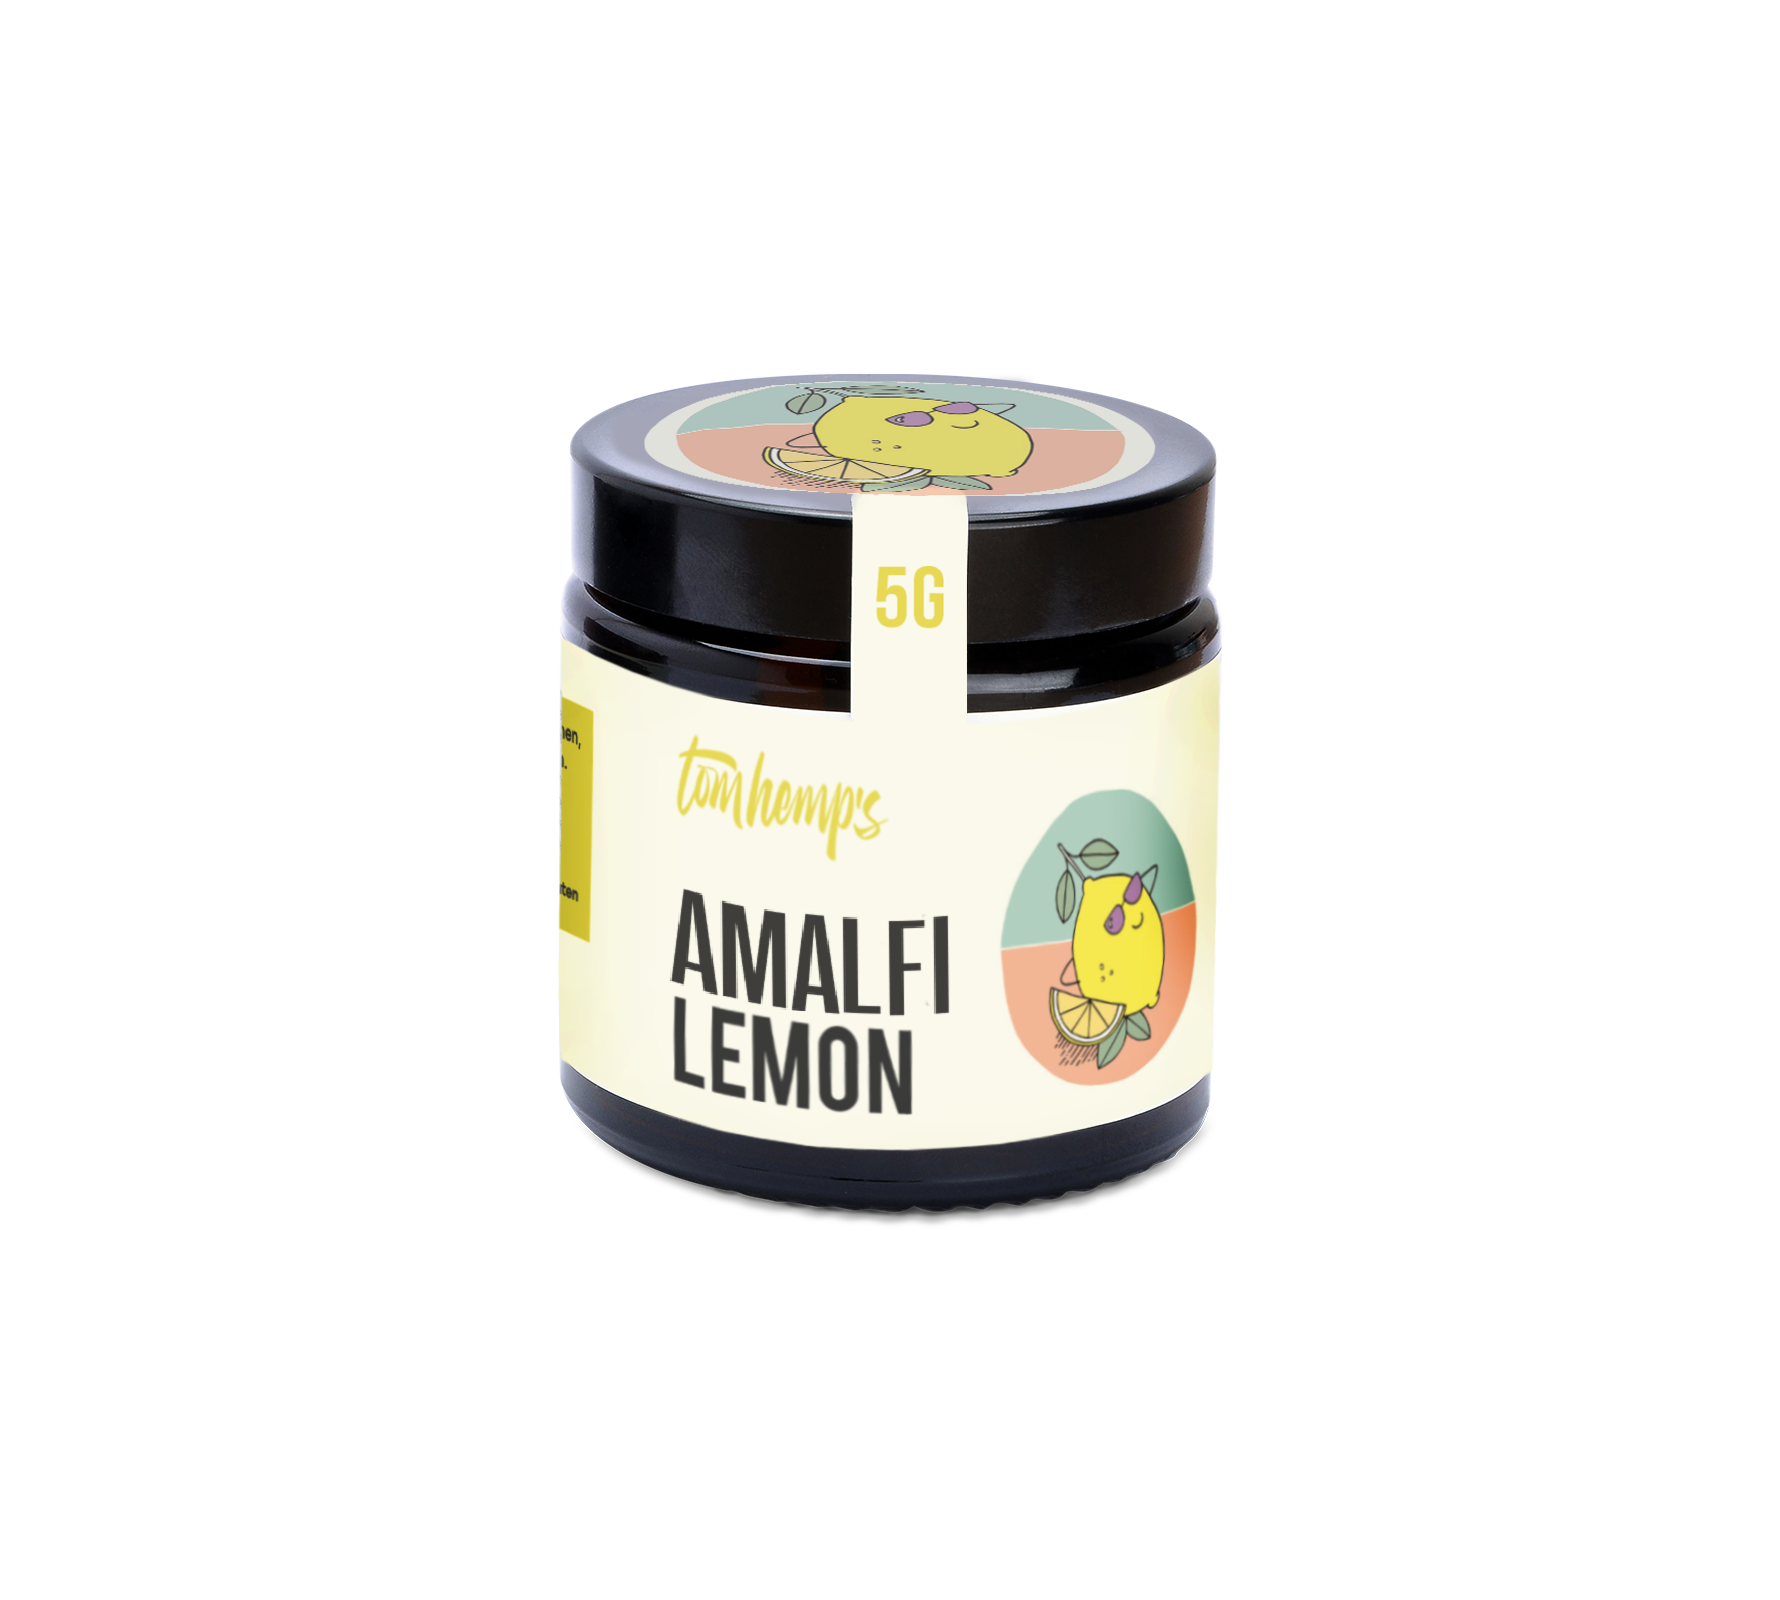 Tom_Hemps_product_strain_amalfi_lemon_